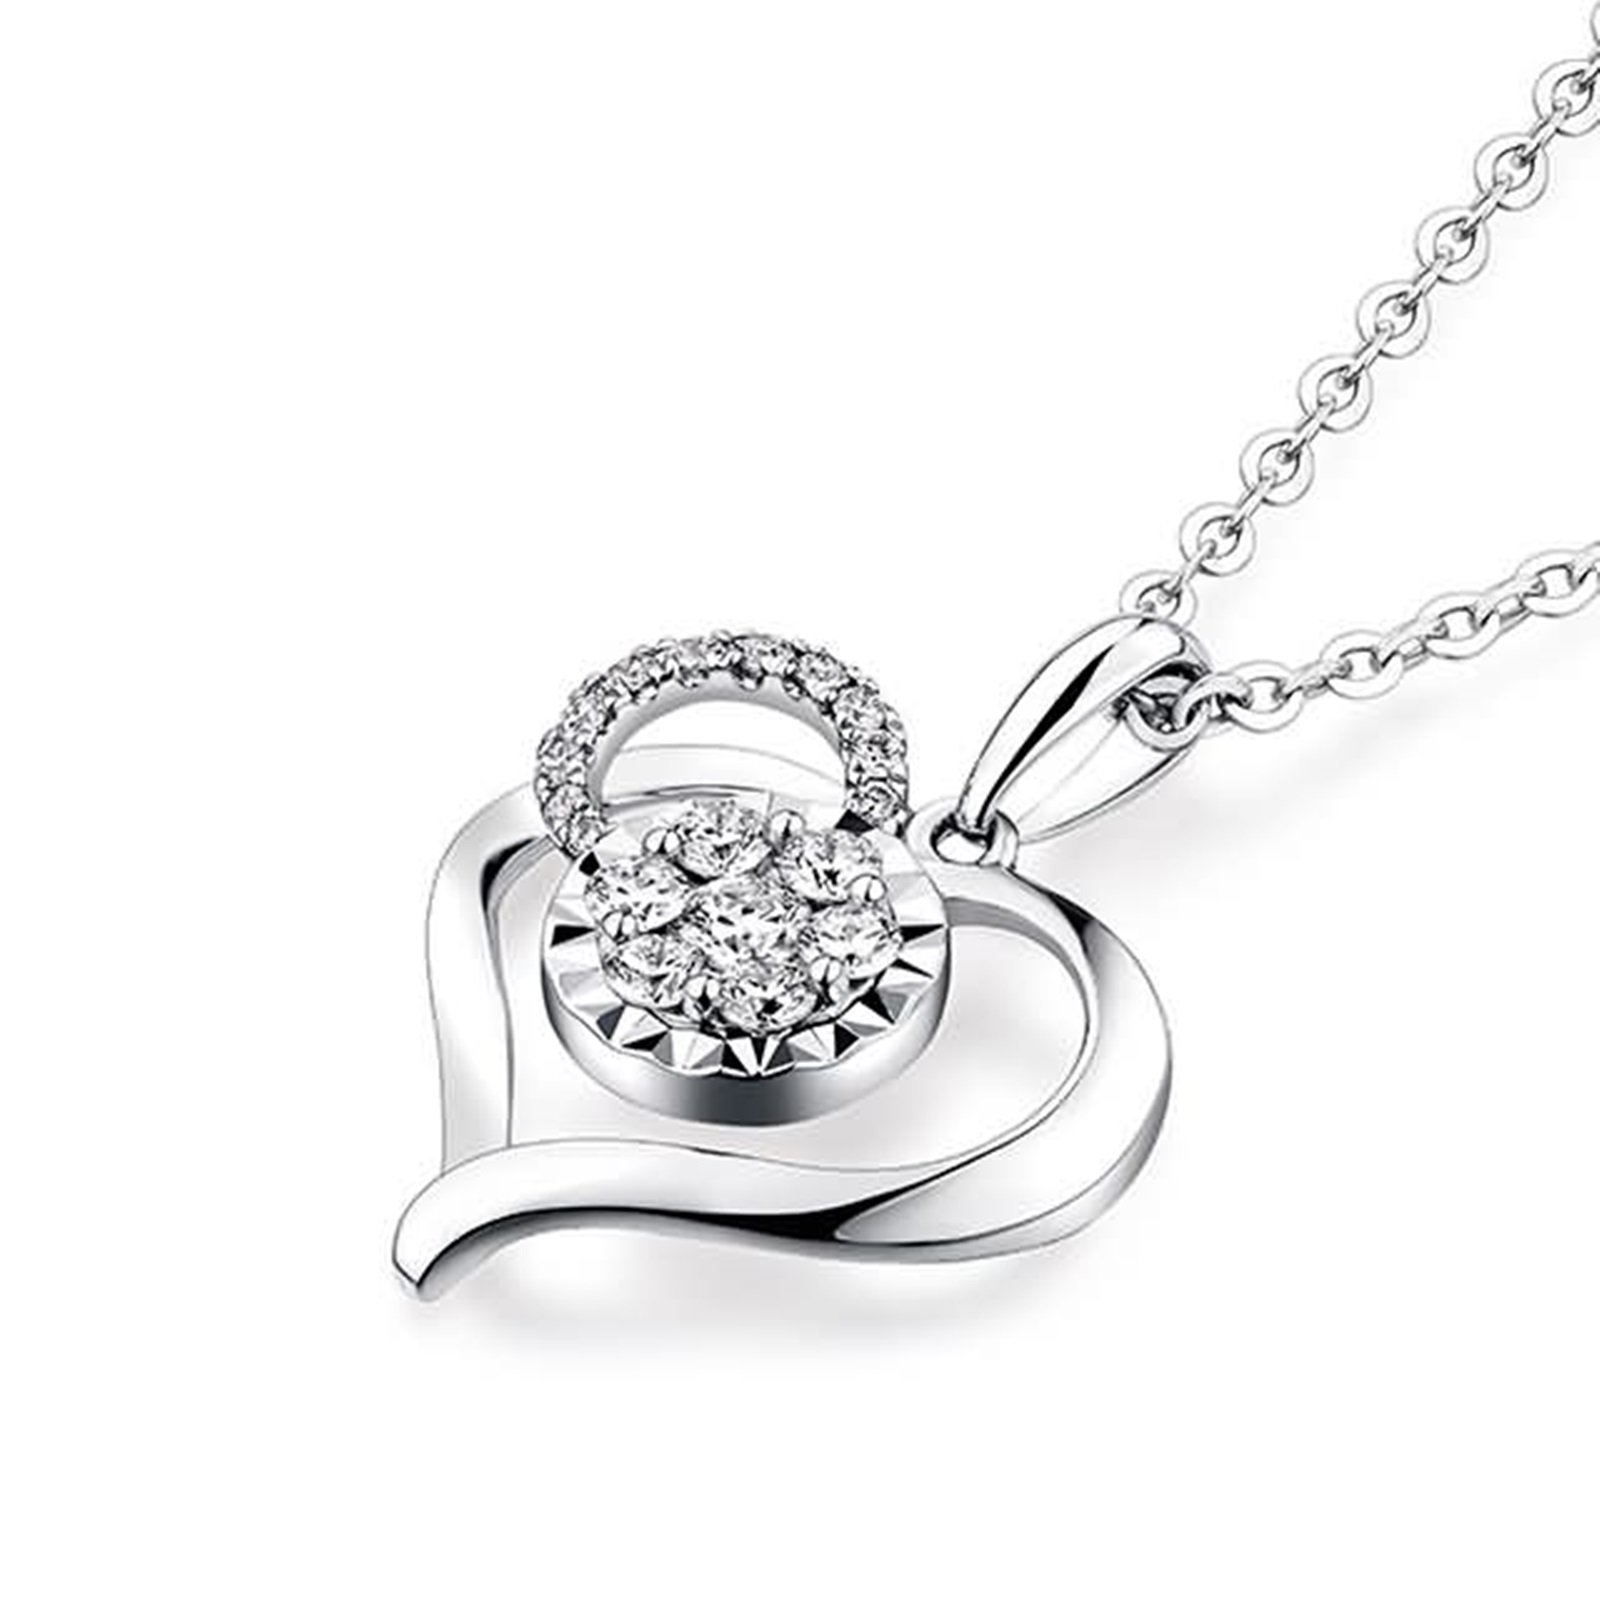 Beydodo Women Necklace,18k Real White Gold 1.06g Heart Convergence of Love Round Diamond Necklace by  (Image #2)